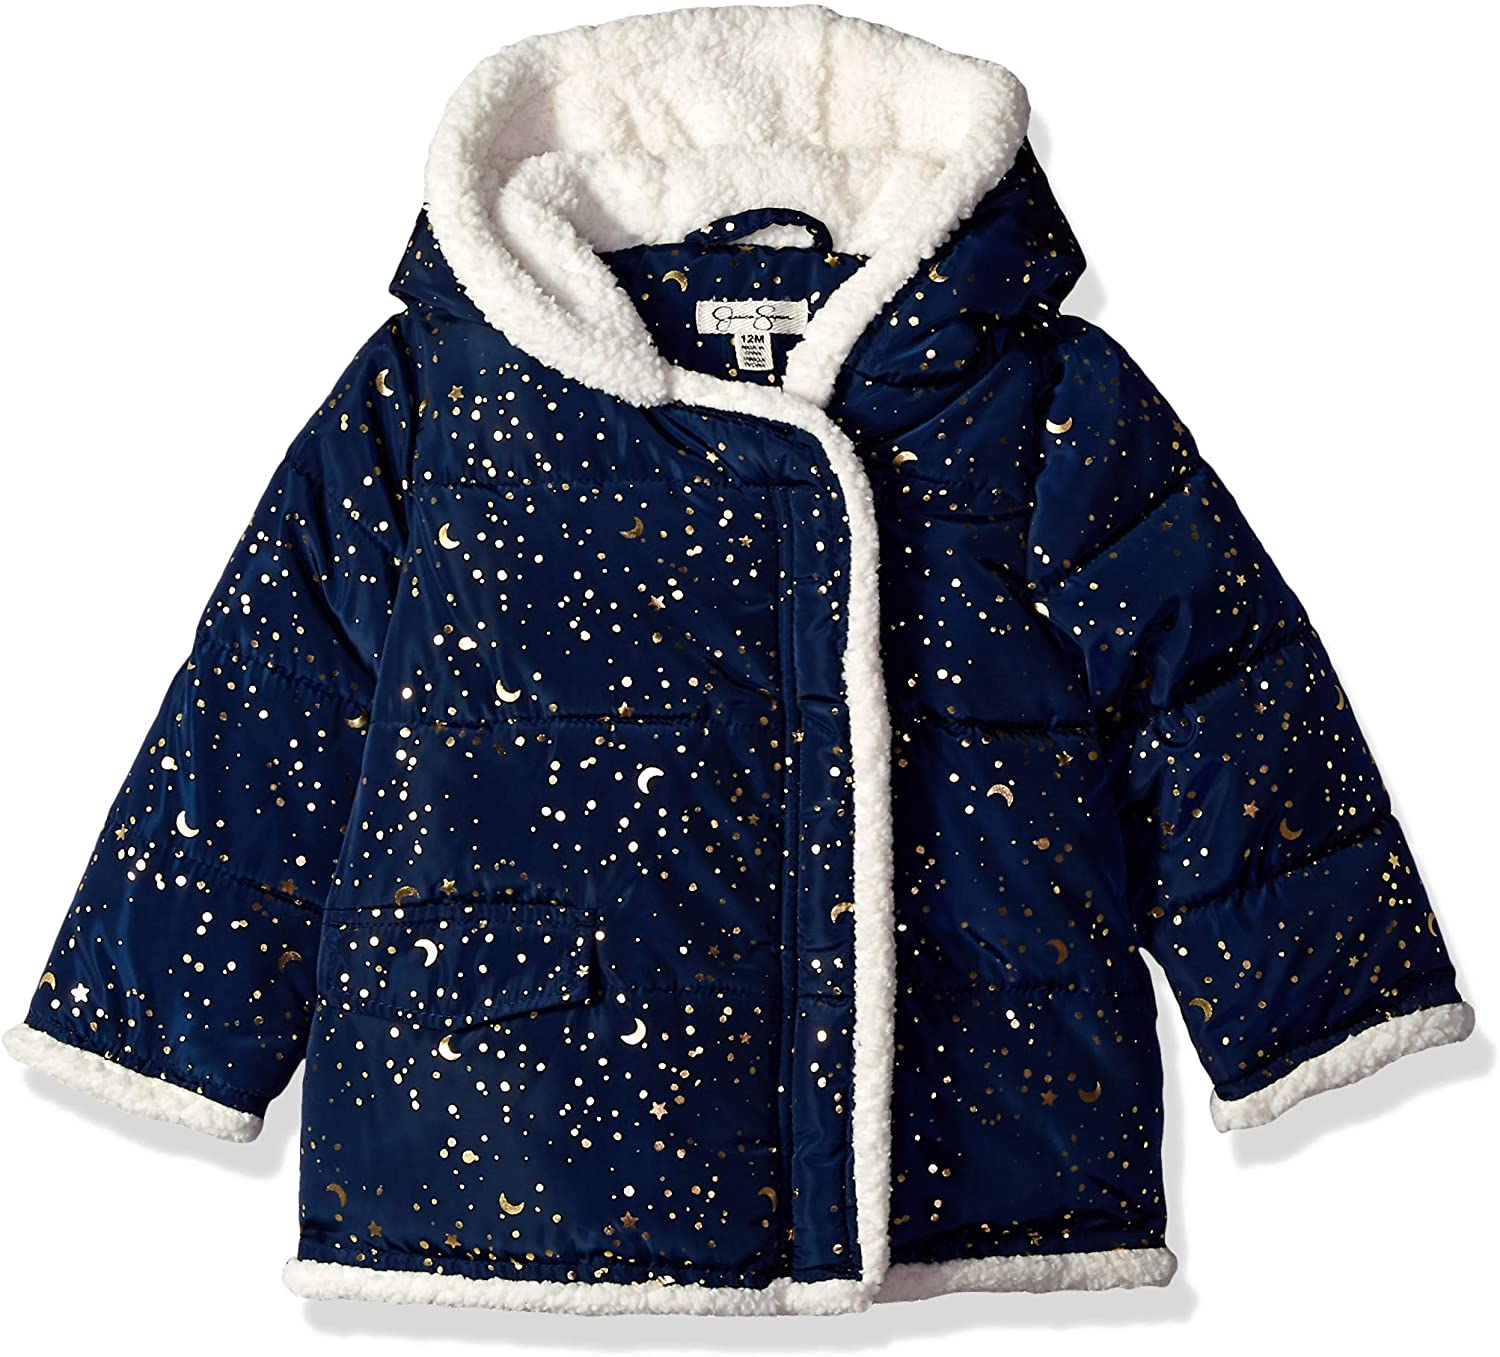 Jessica Simpson Baby Girls Printed Bubble Jacket